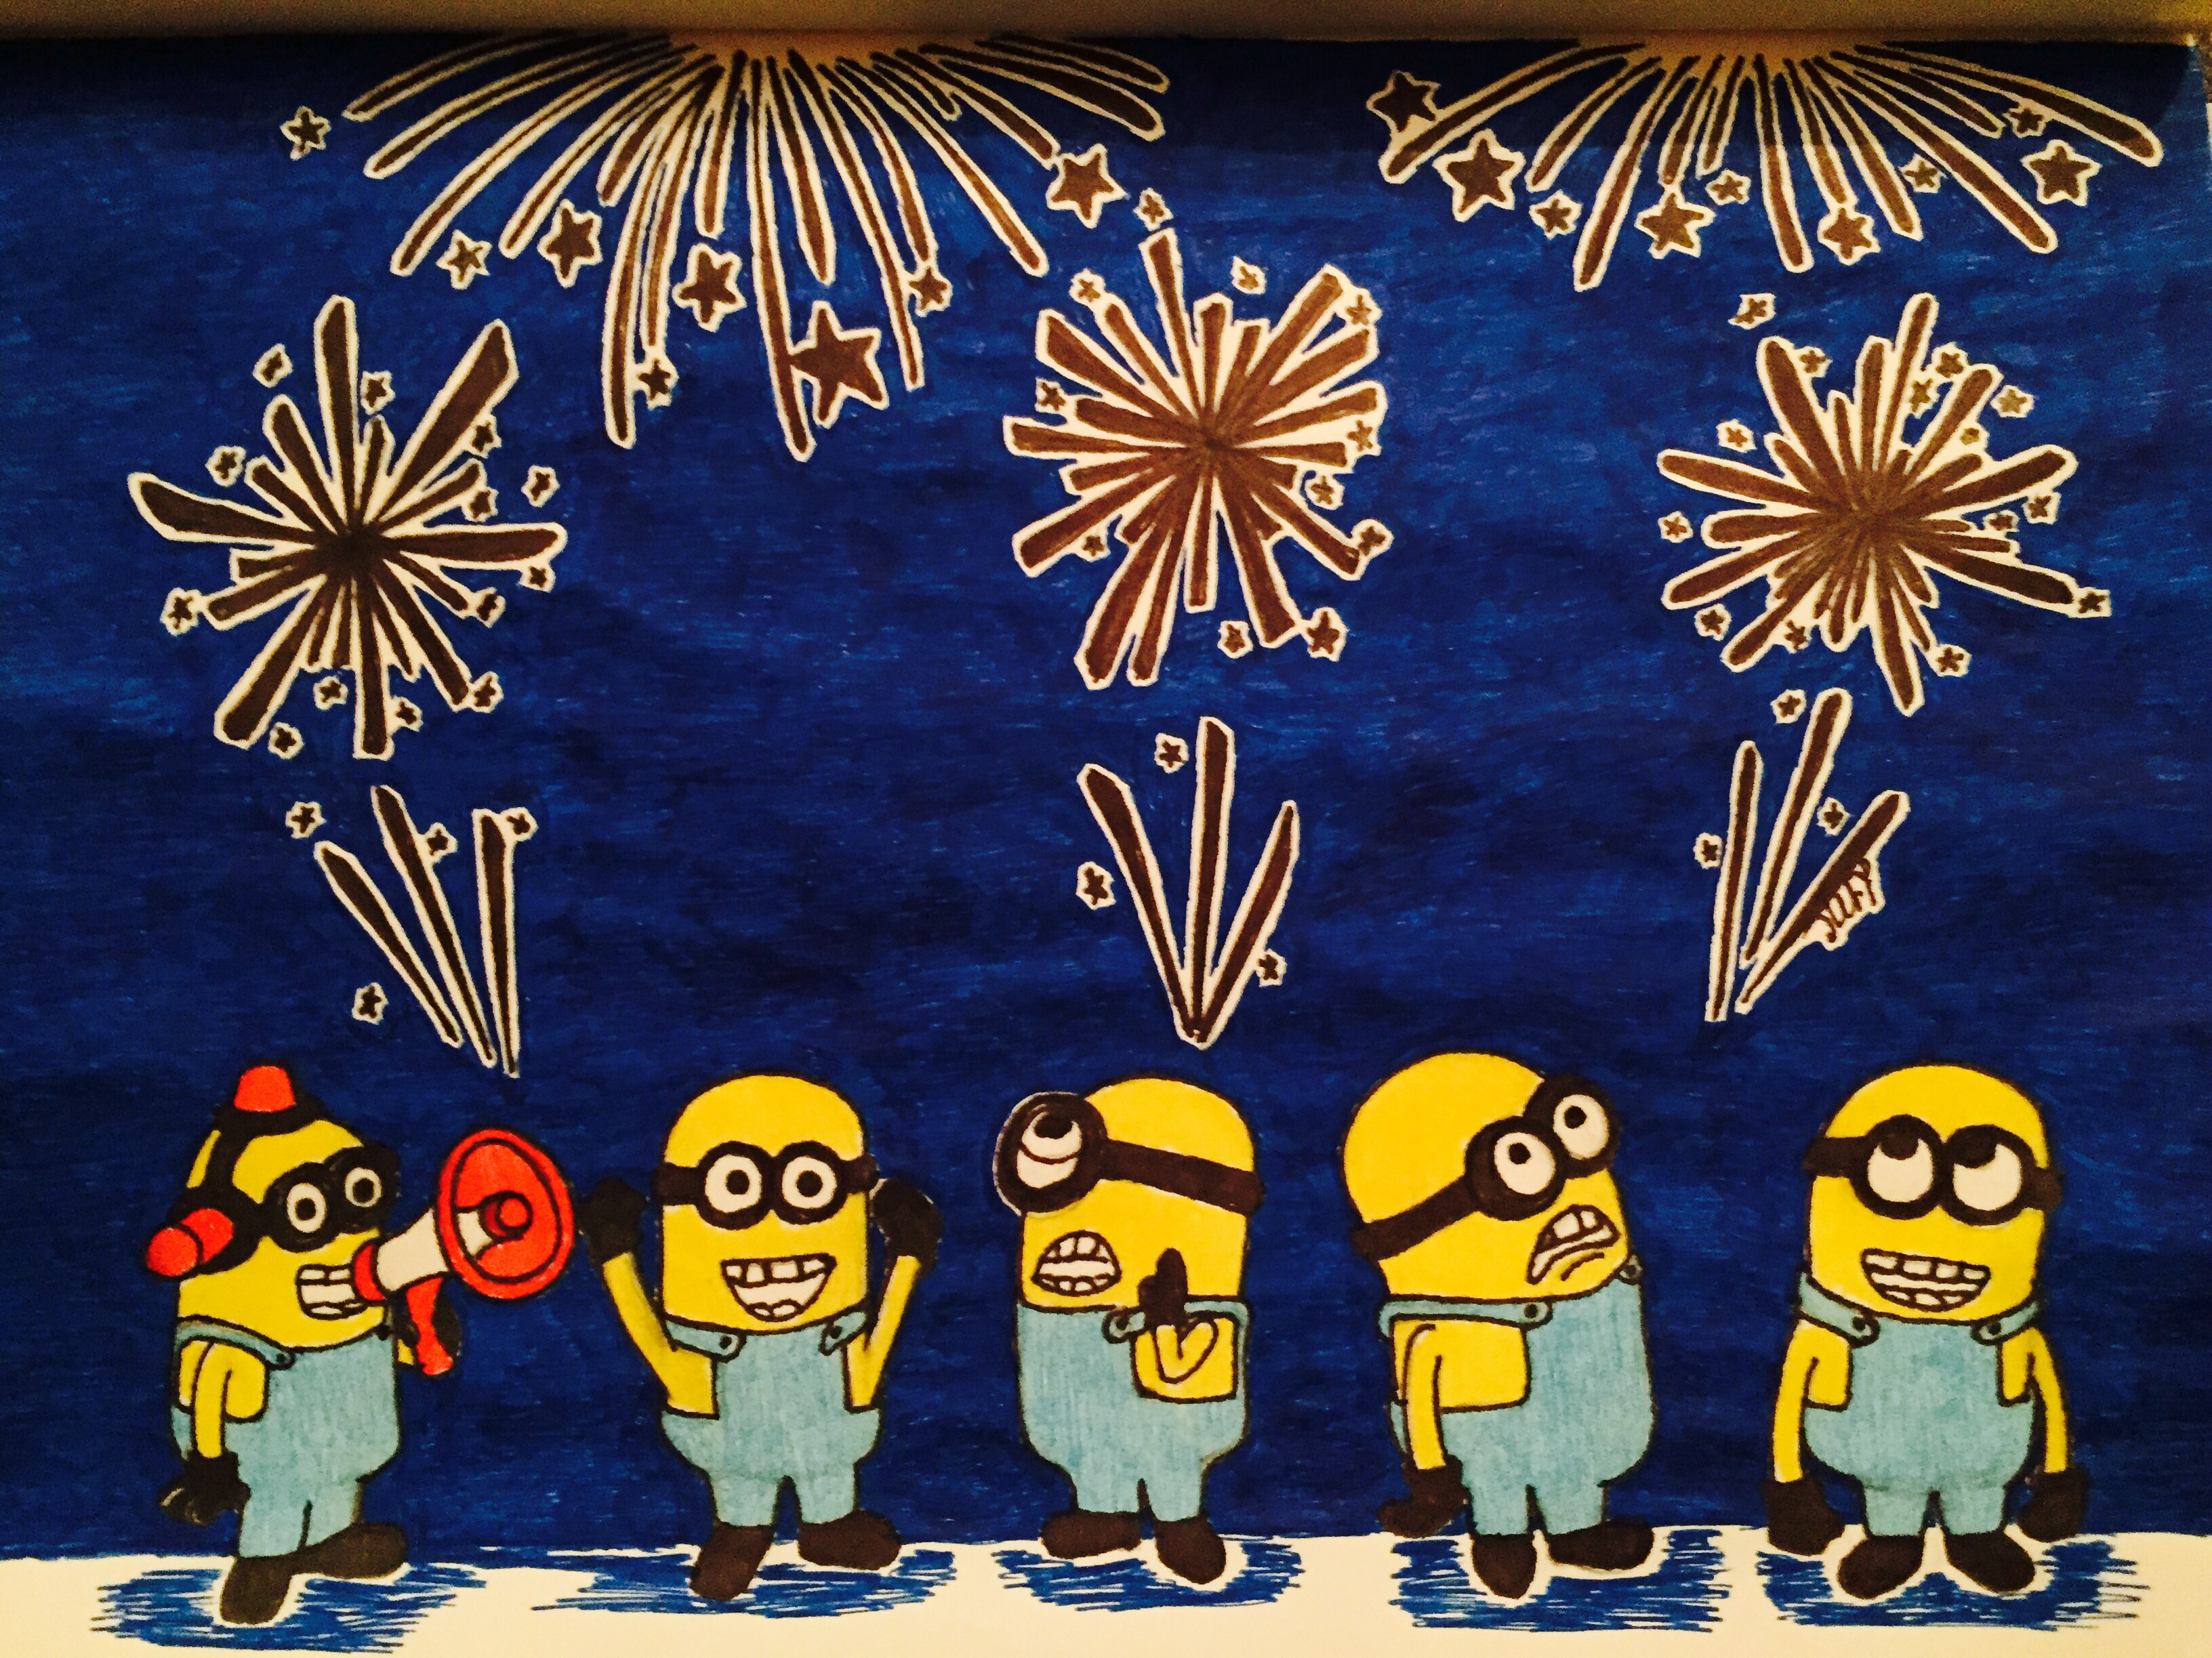 4th of july minions wallpaper - photo #18